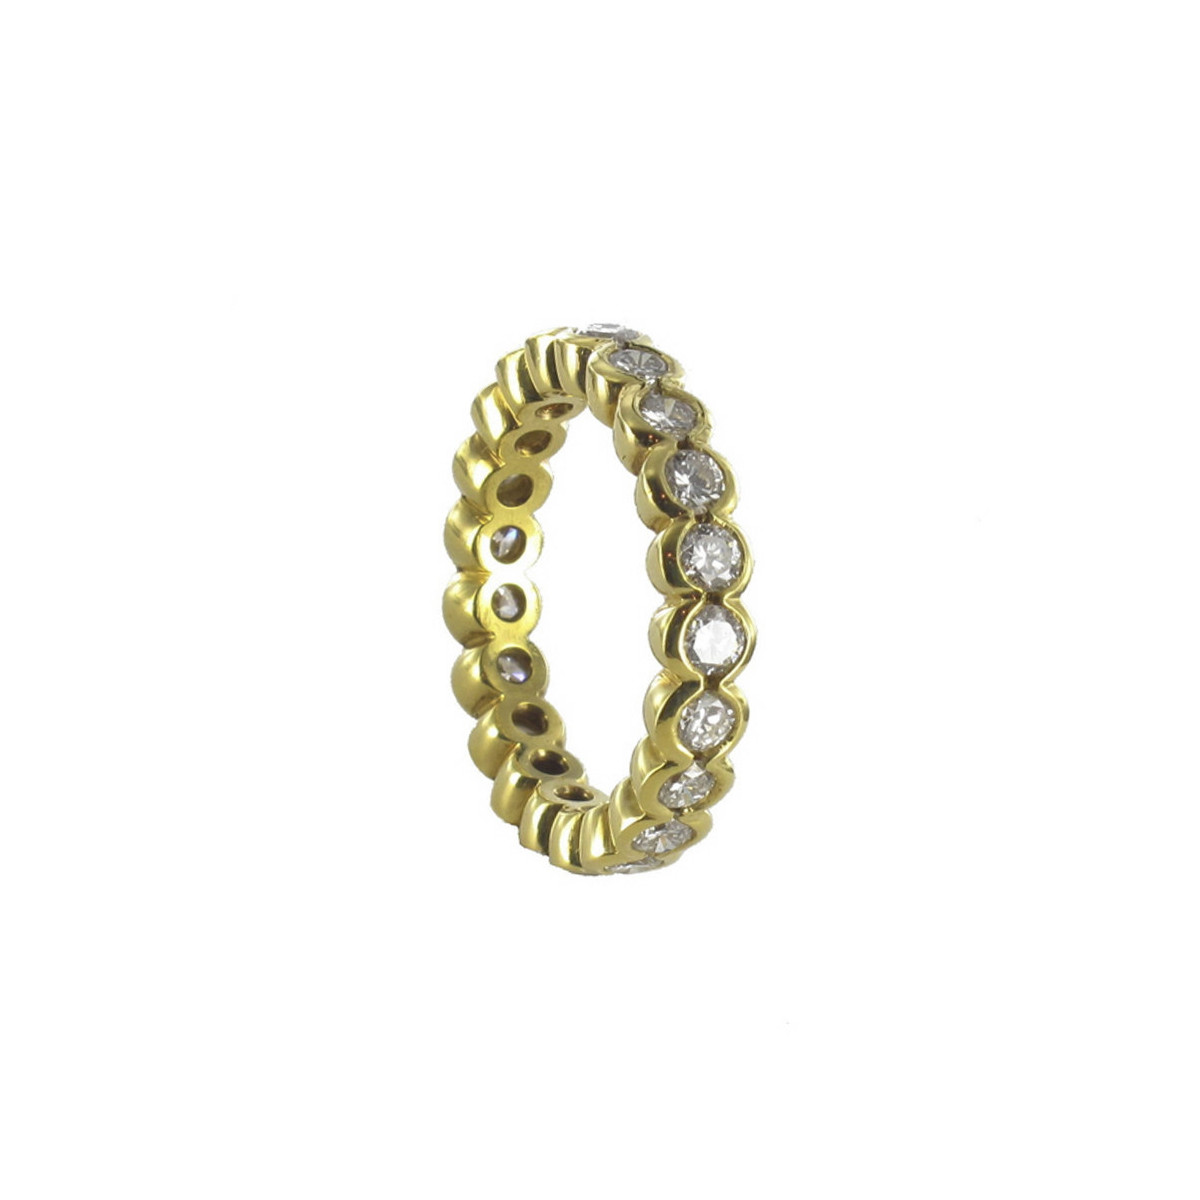 RING YELLOW GOLD DIAMONDS BRILLIANT SIZE